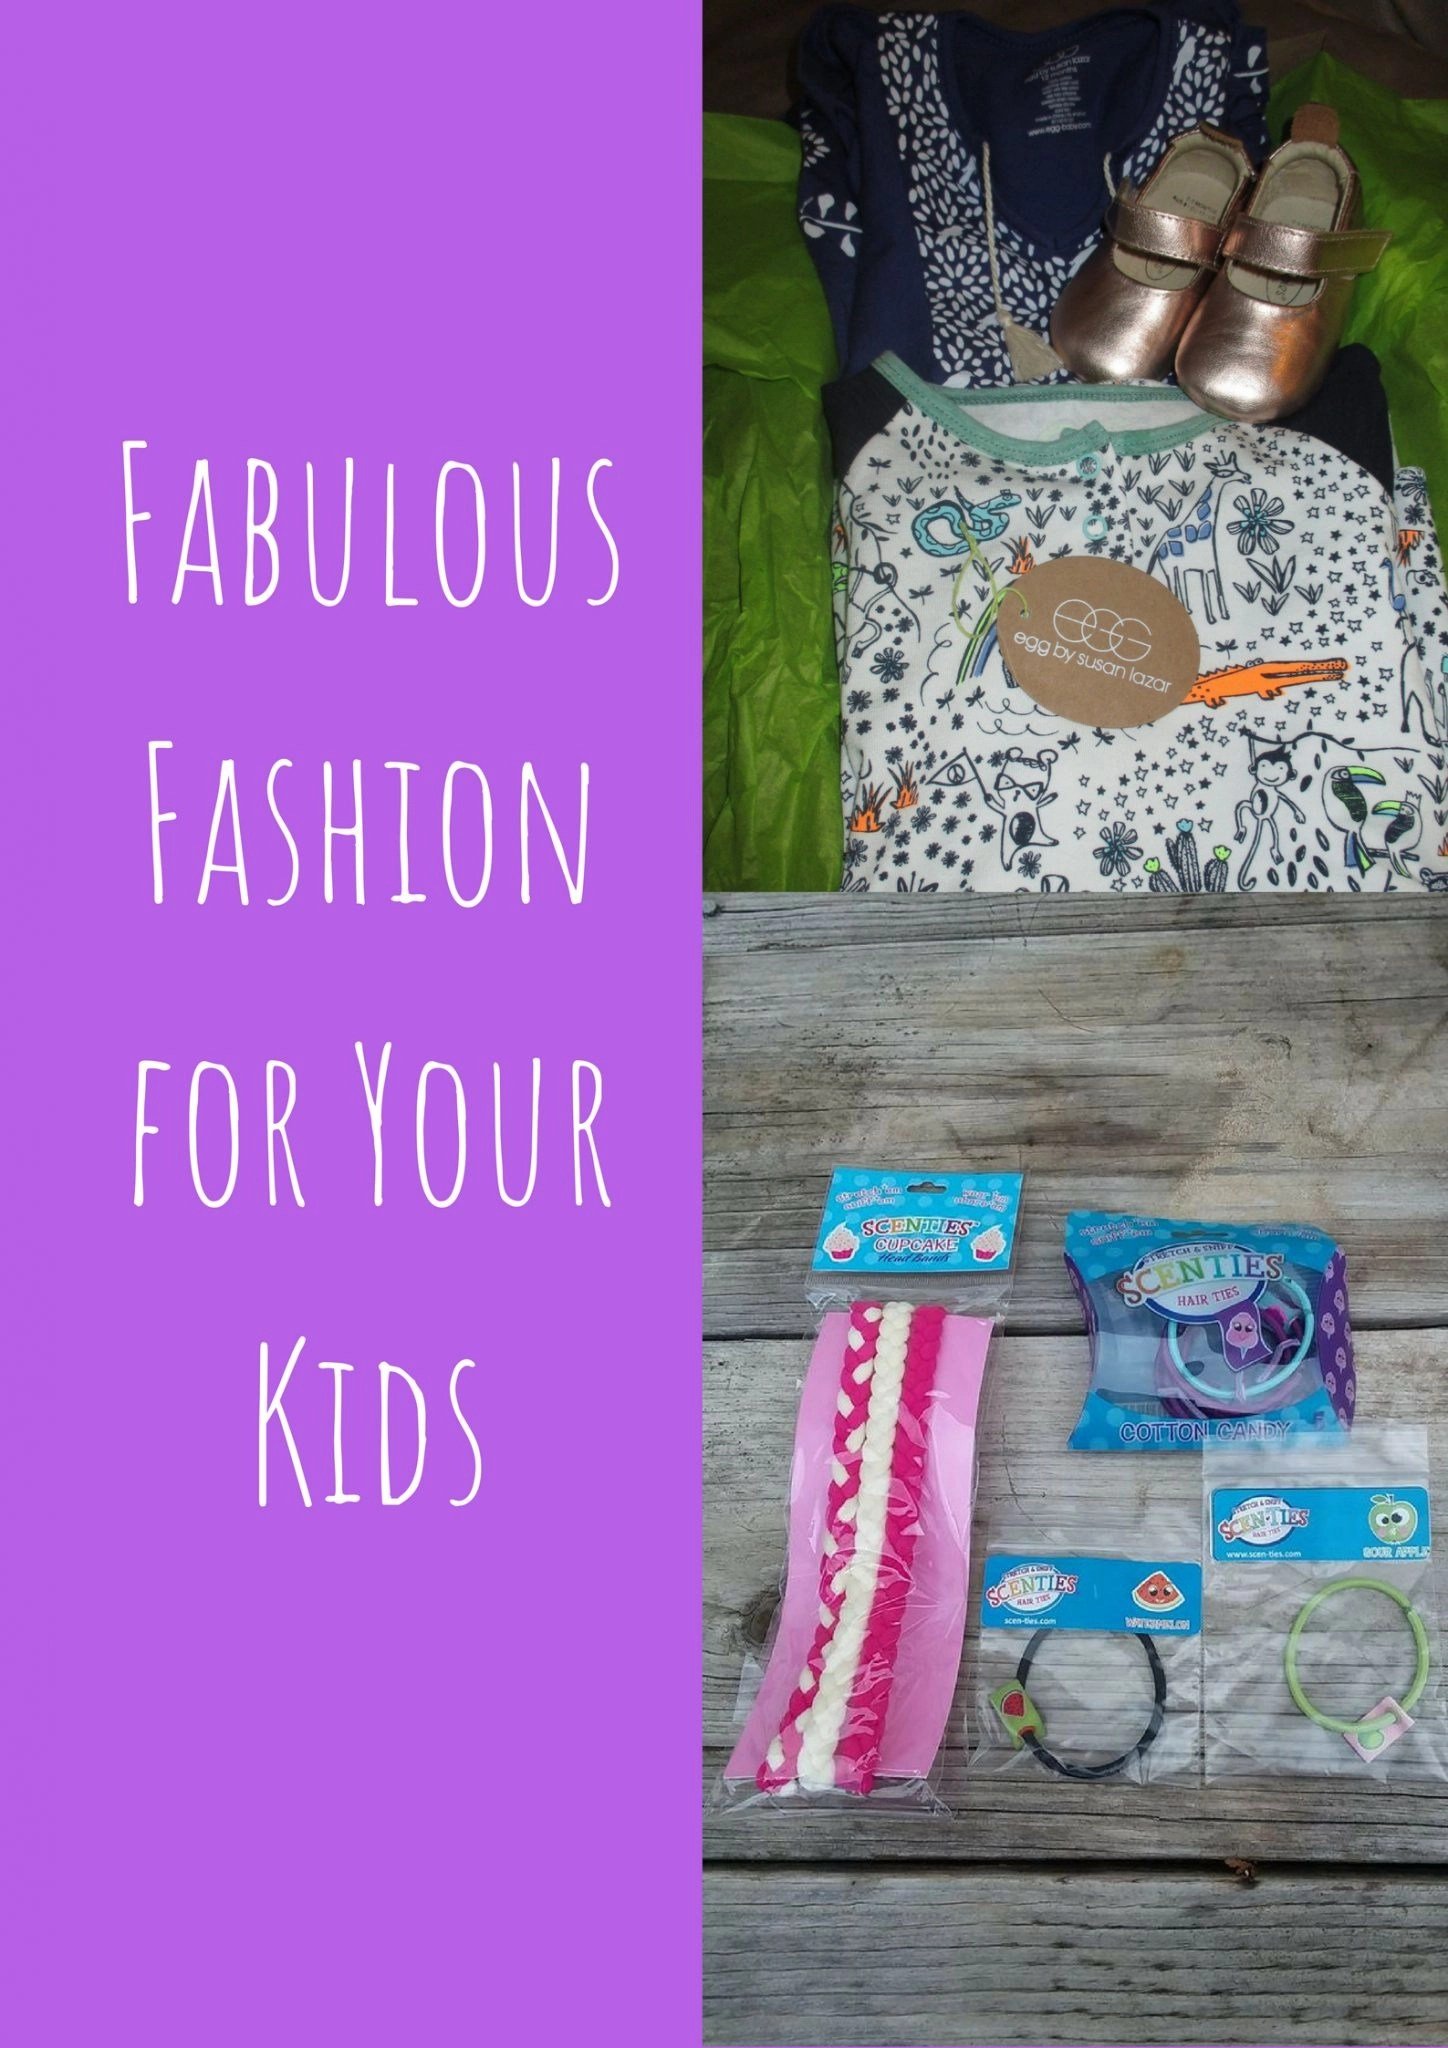 Fabulous Fashion for Your Kids